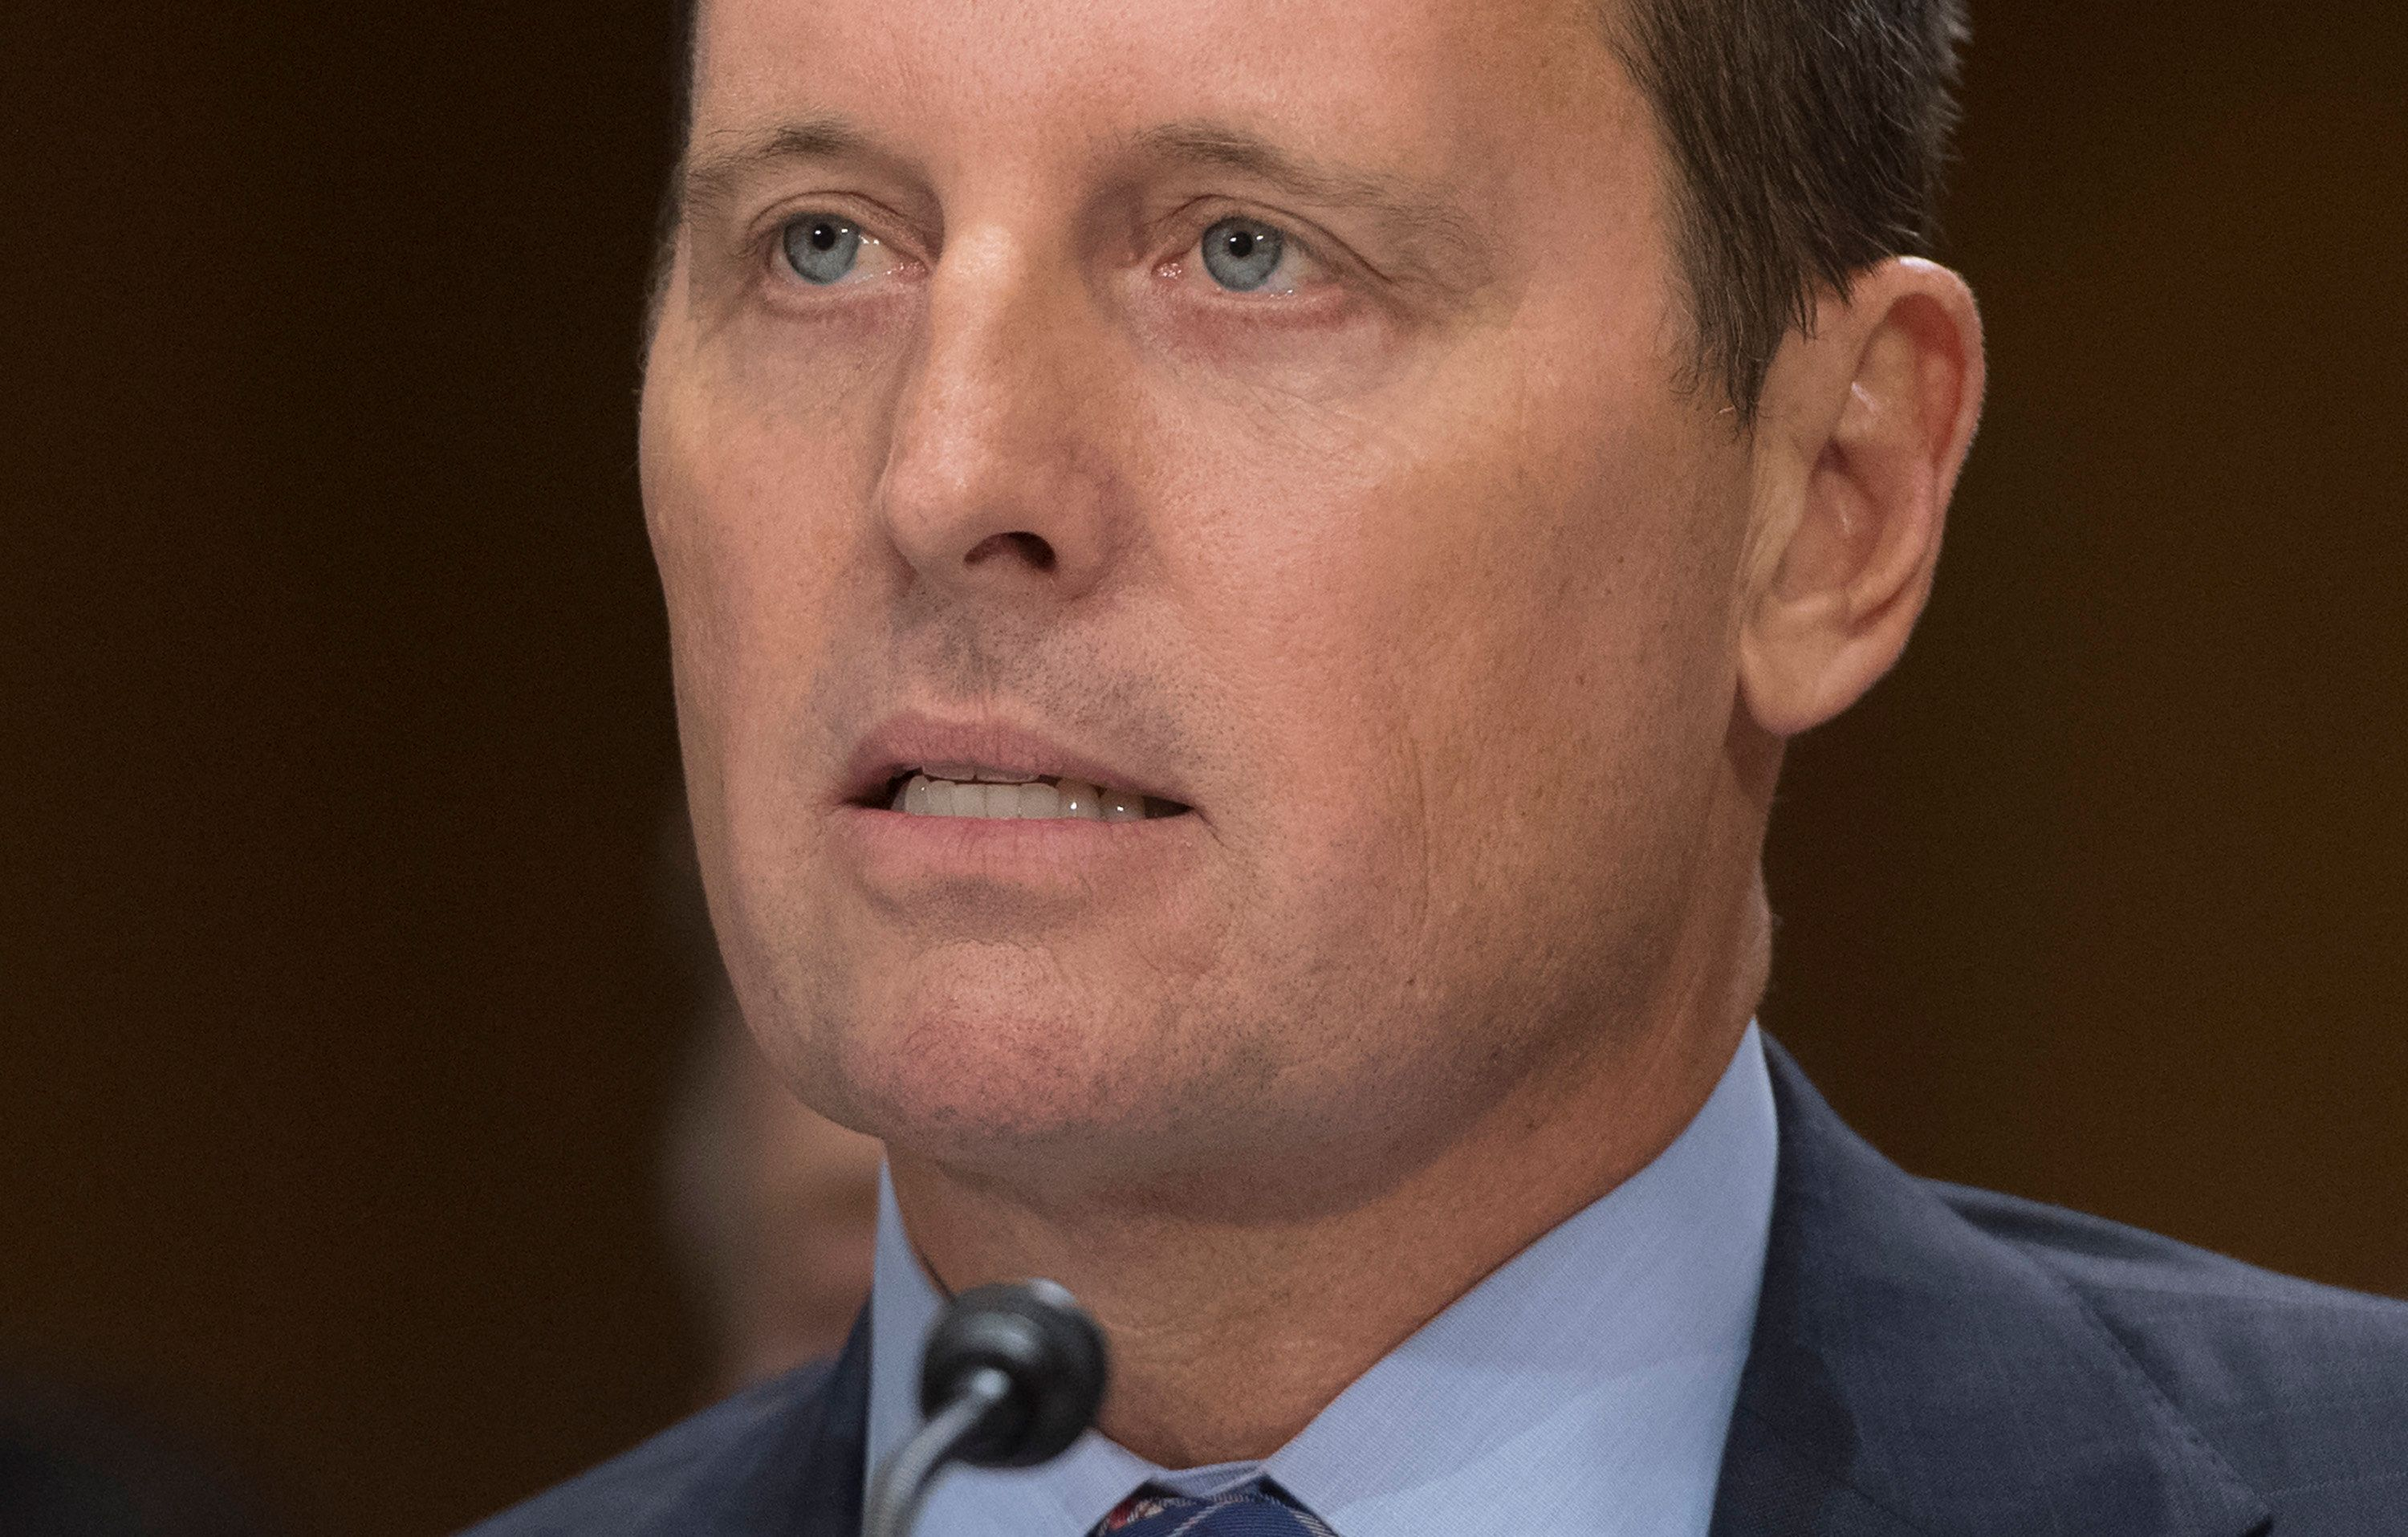 Senate Confirms Richard Grenell as Ambassador to Germany